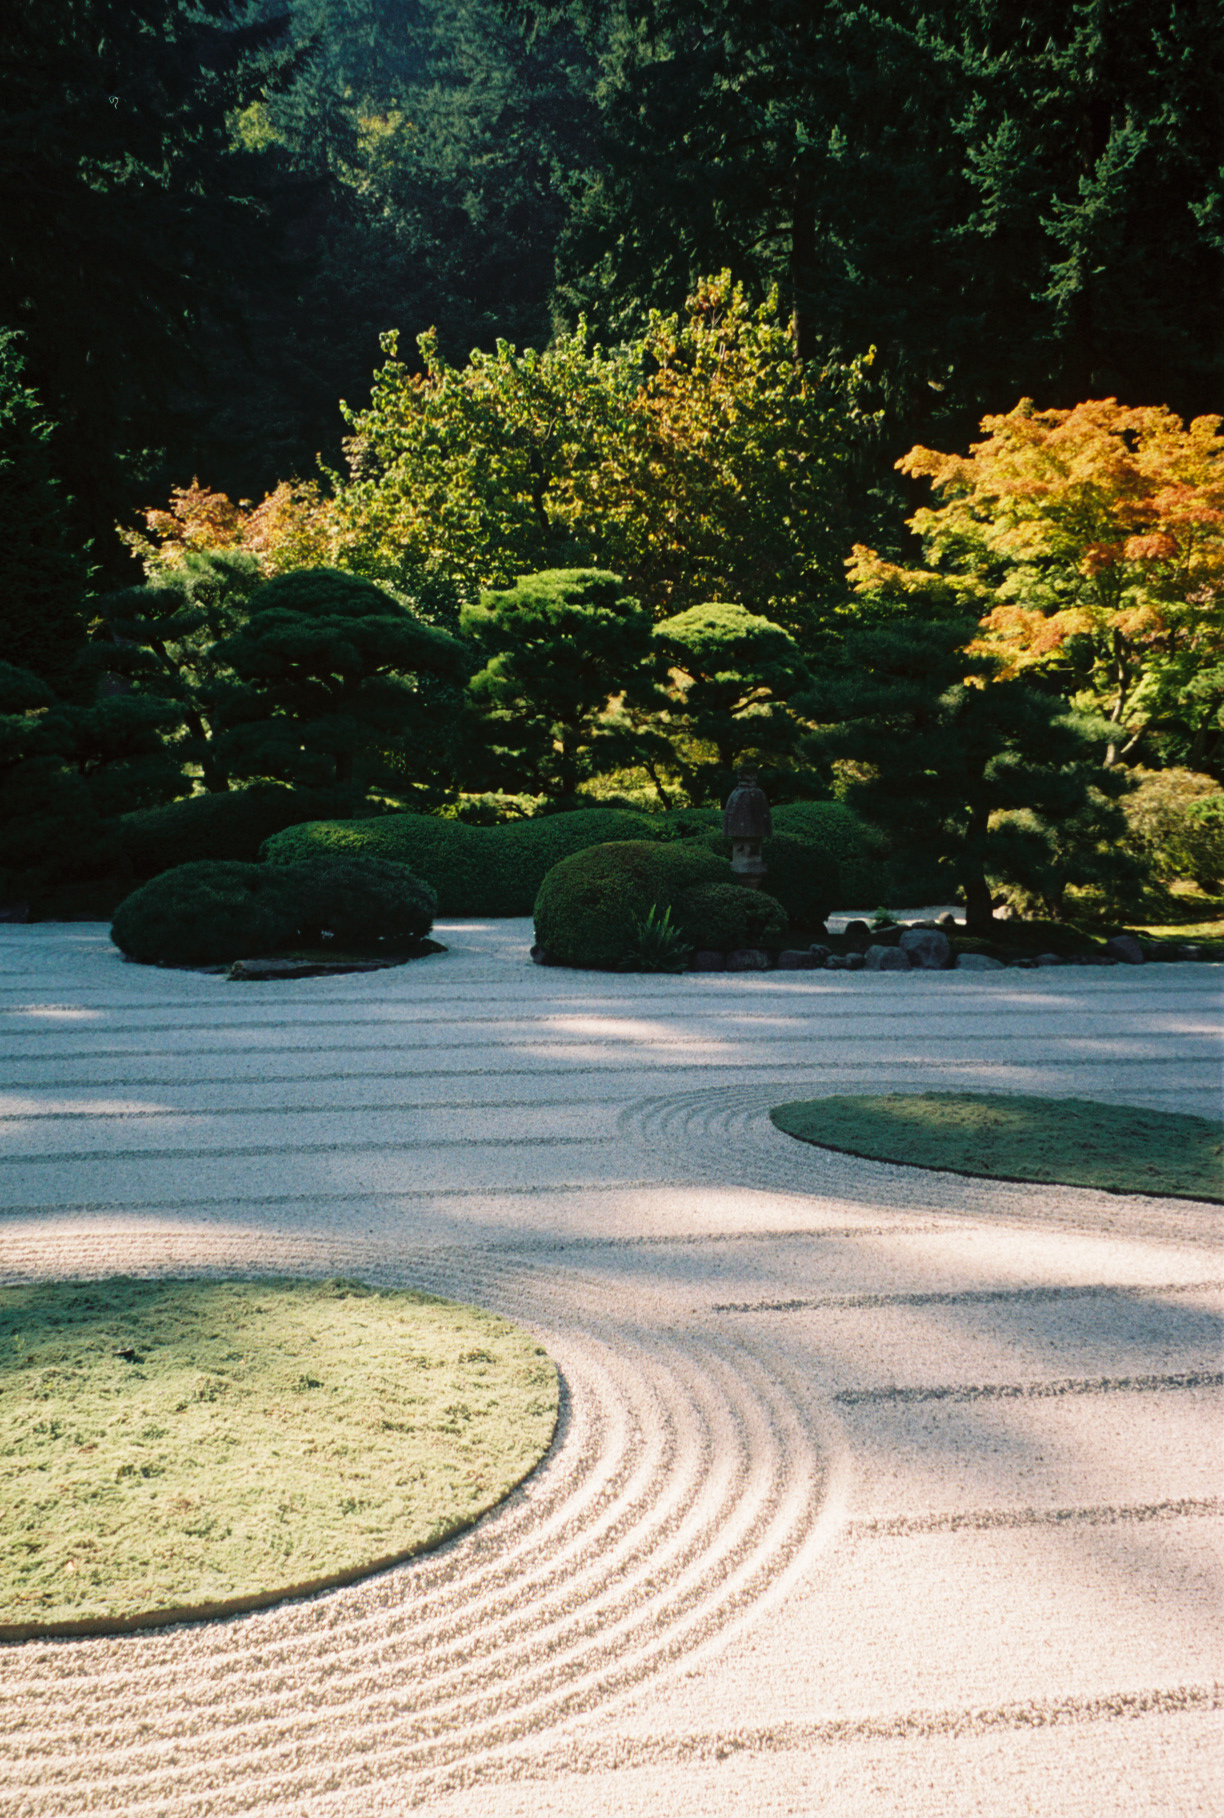 The Japanese Gardens